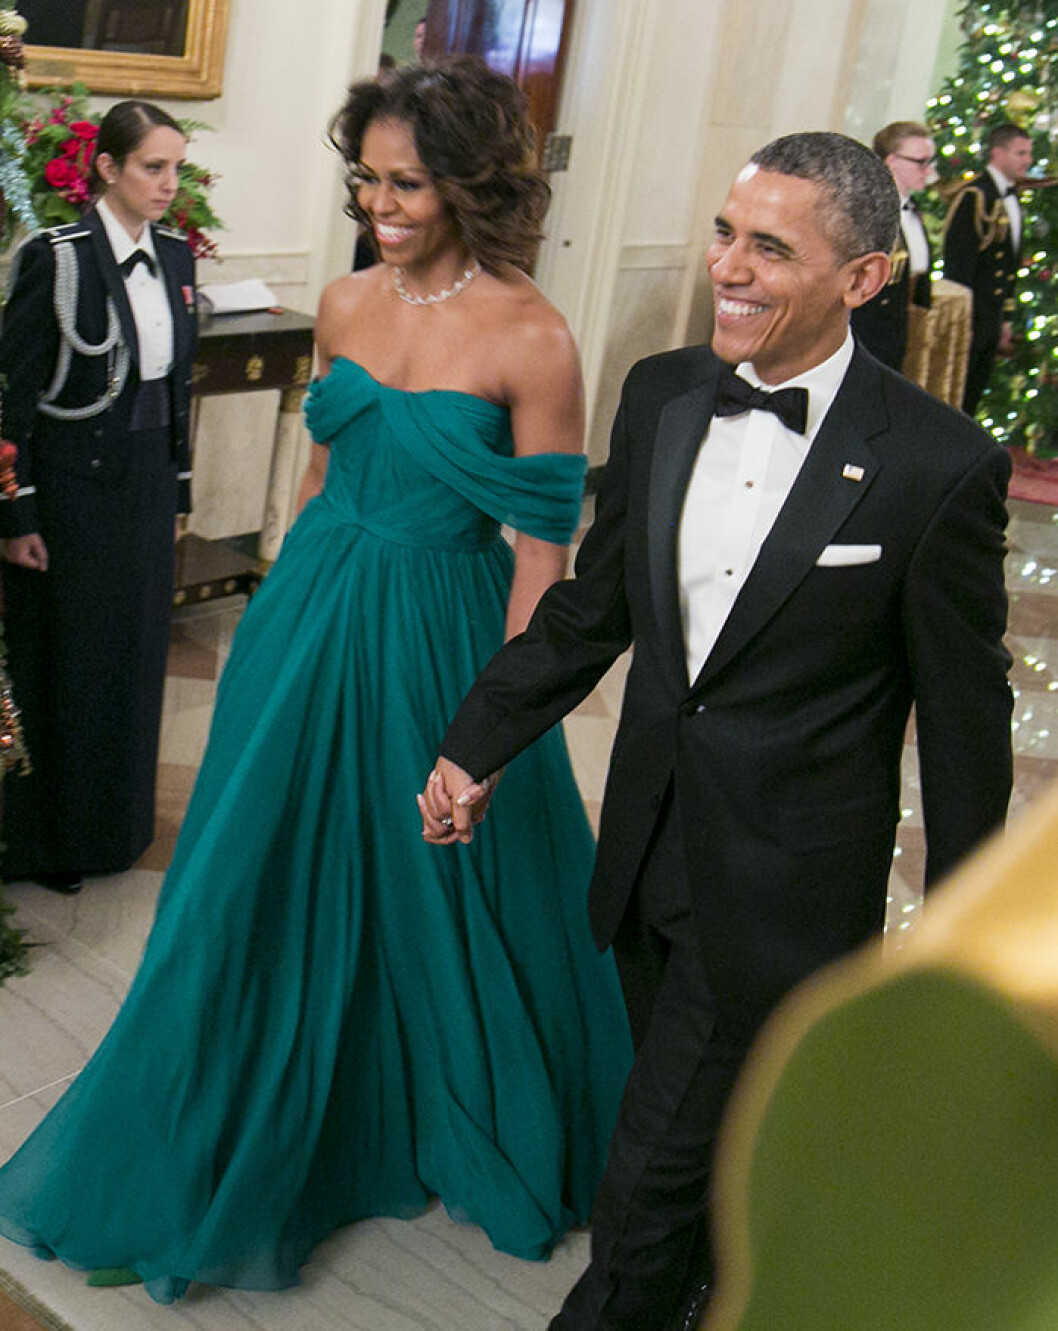 07 December 2013 - Washington D.C. - Michelle Obama, Barack Obama. The 2013 Kennedy Center Honors hosted by United States Secretary of State John F. Kerry at the U.S. Department of State. The 2013 honorees are: opera singer MartinaArroyo; pianist, keyboardist, bandleader and composer HerbieHancock; pianist, singer and songwriter BillyJoel; actress ShirleyMacLaine; and musician and songwriter CarlosSantana. Photo Credit: Ron Sachs/CNP/AdMedia/insight media